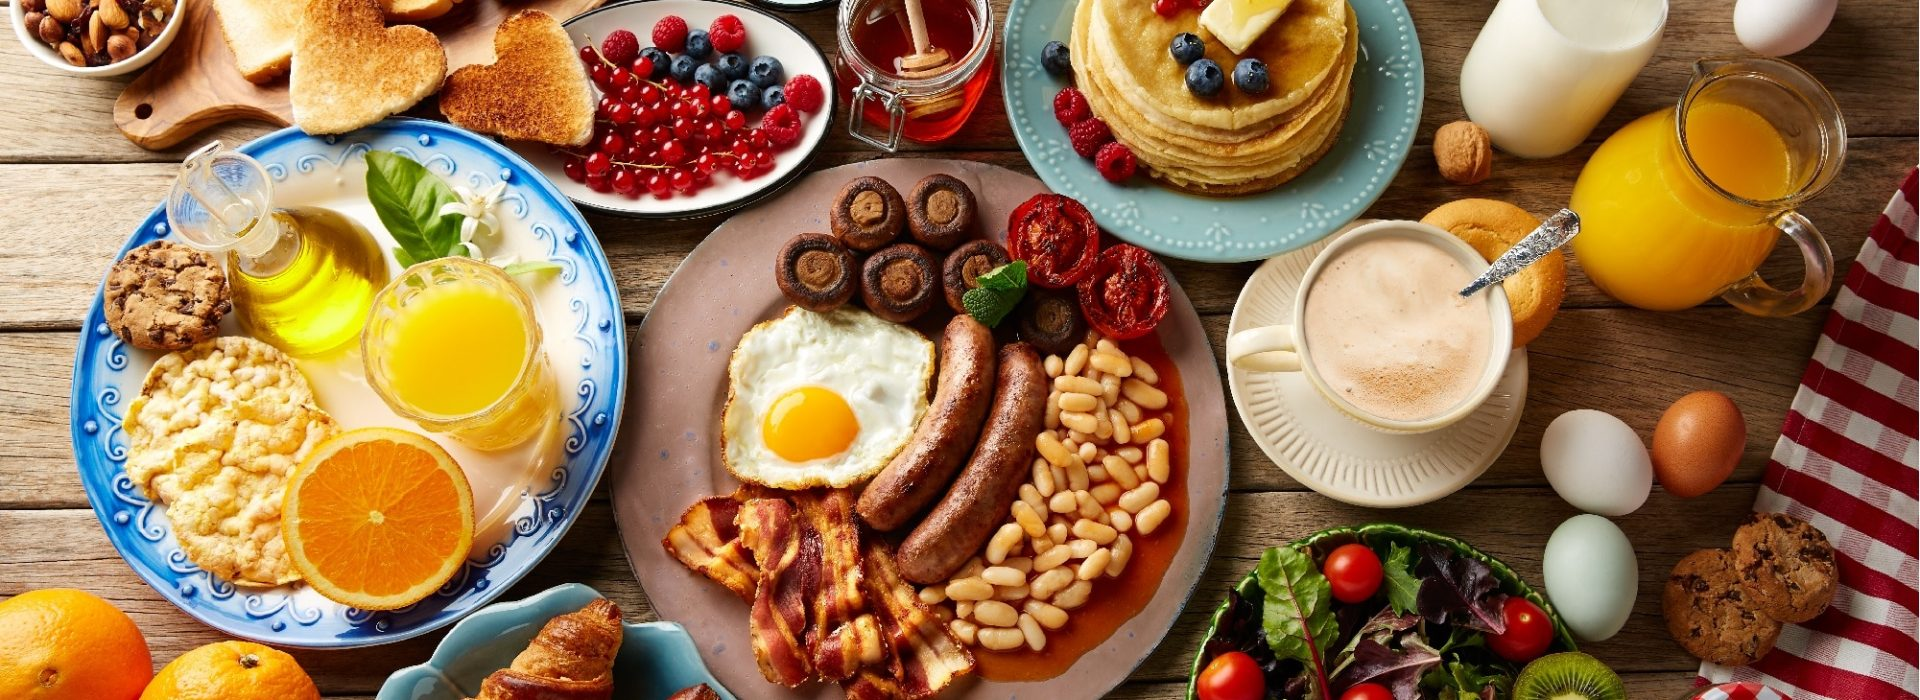 Fathers Day Brunch Image